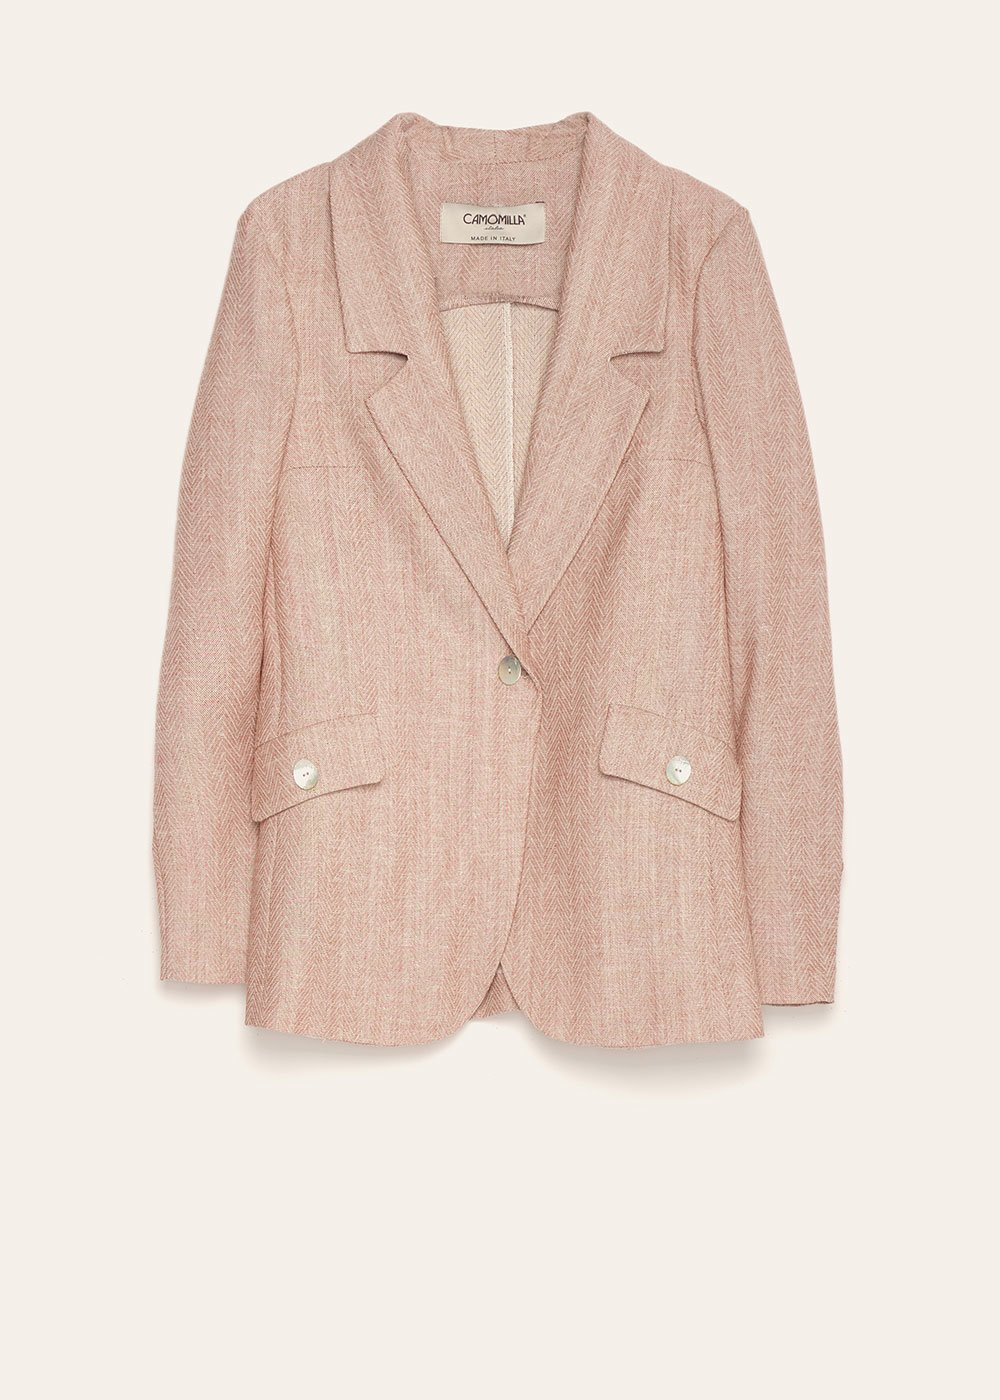 Jeremy classic cut jacket with mother-of-pearl buttons - Salmone / White Fantasia - Woman